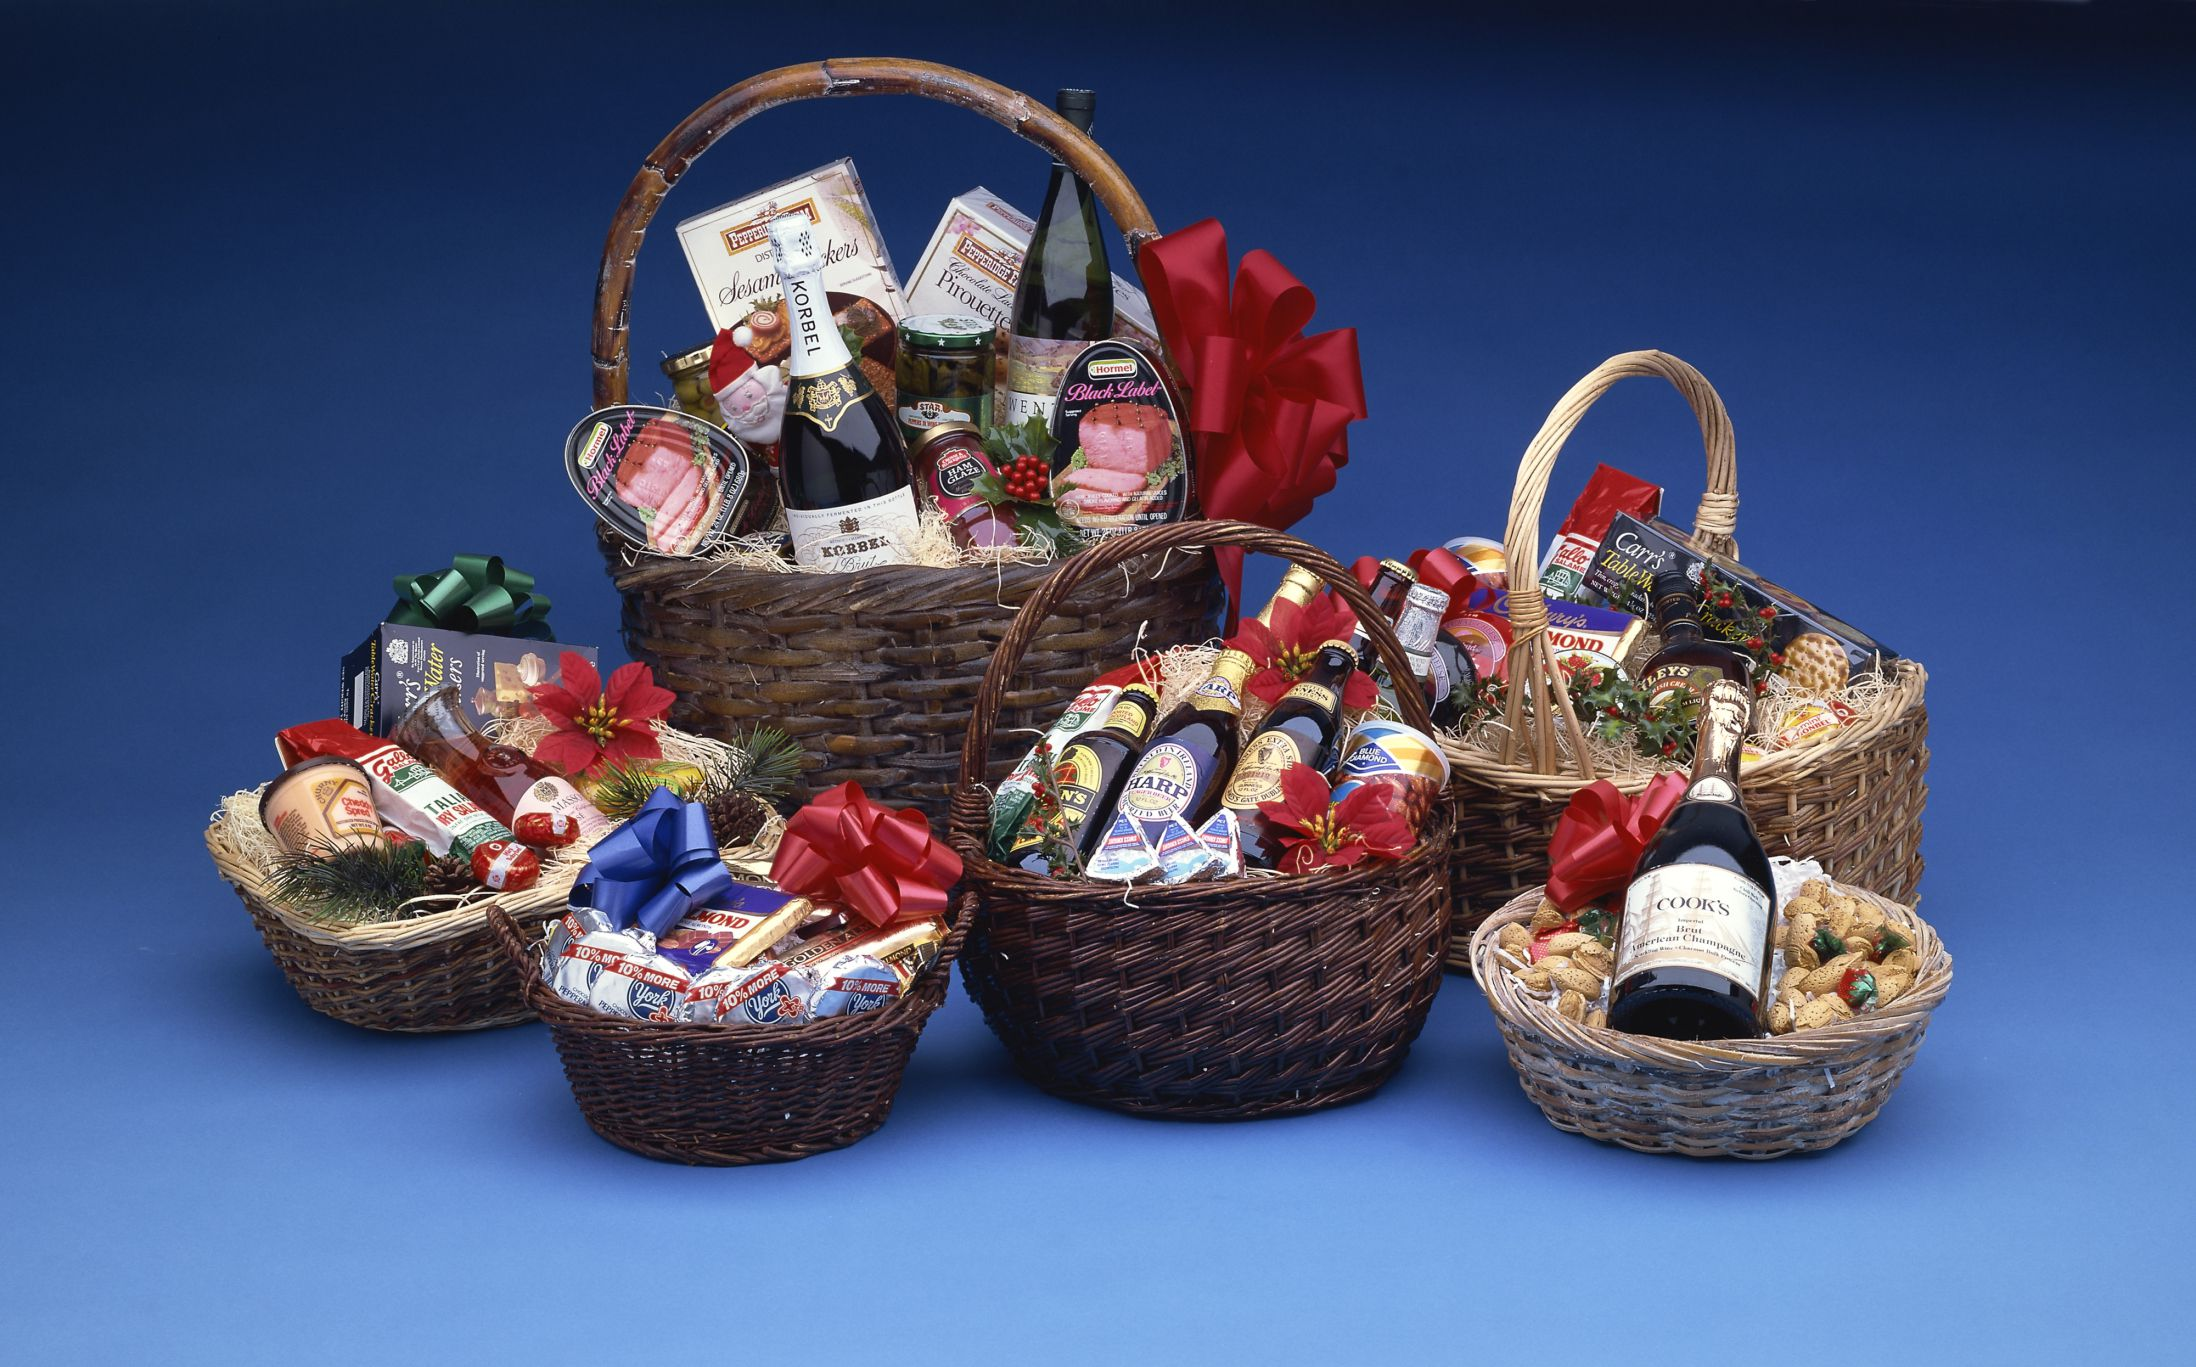 Diabetes-Friendly Food and Beverage Gift Basket Ideas